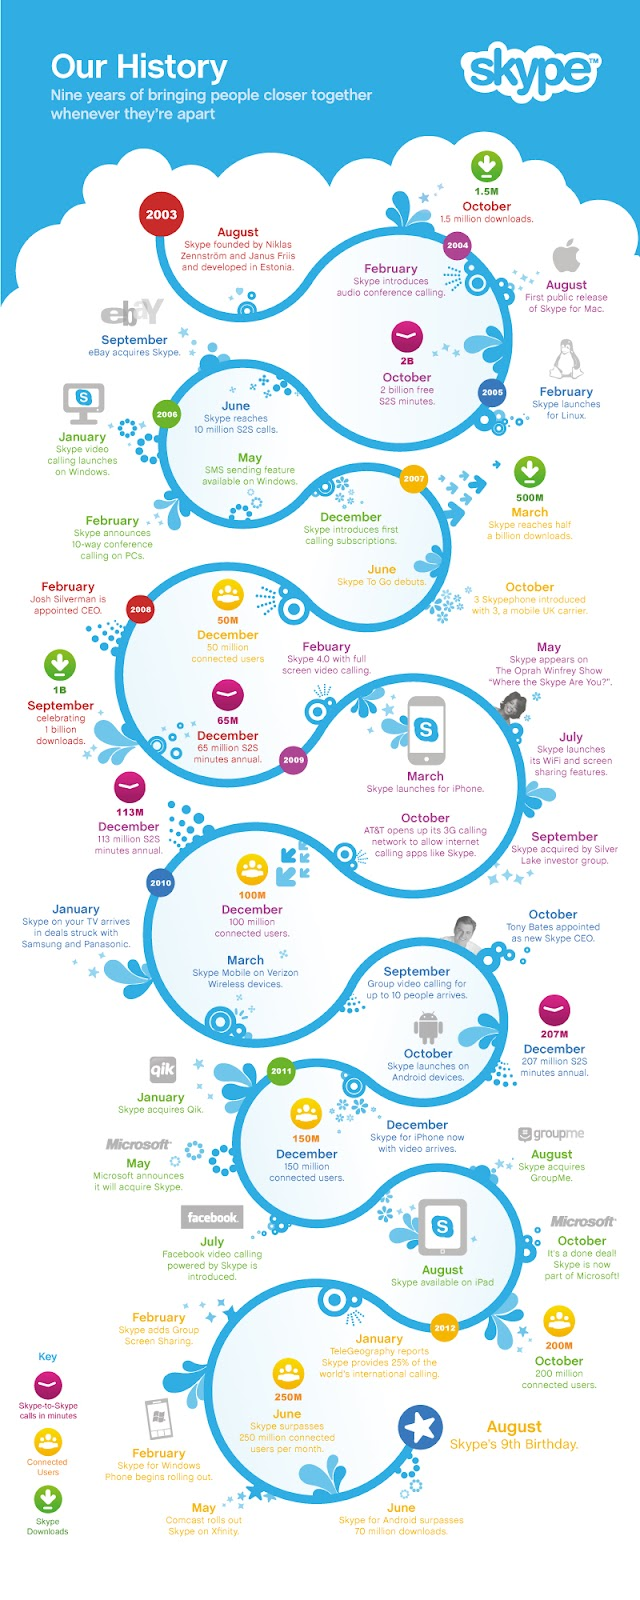 Skype VoIP timeline in an info-graphic